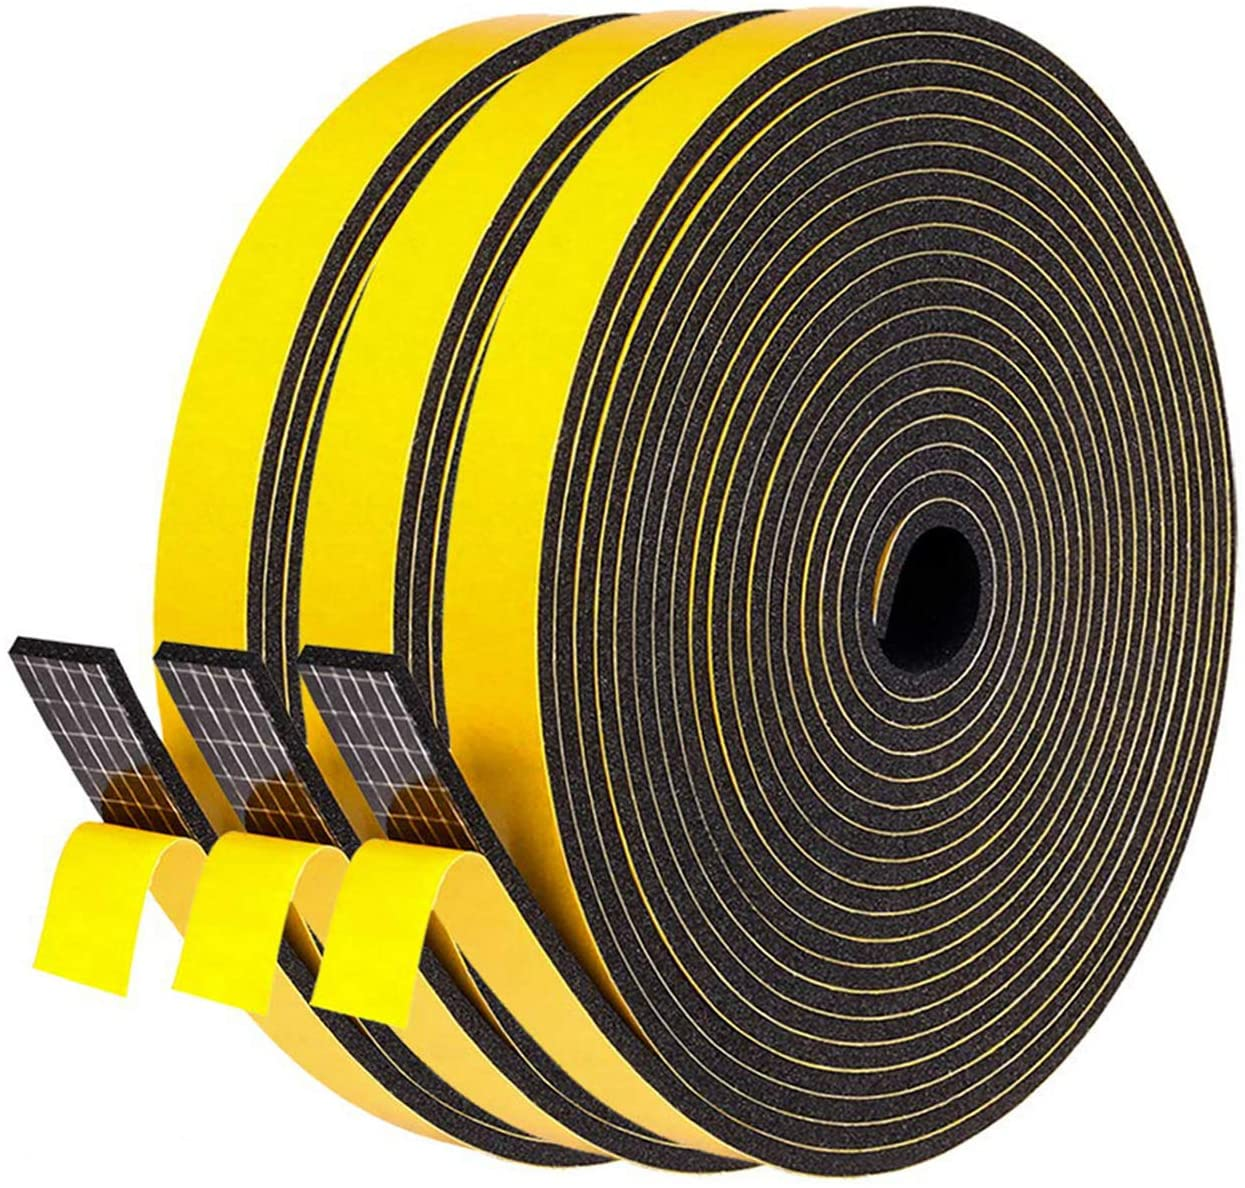 Fowong Weather Stripping Soundproofing 3 Rolls, 1/2